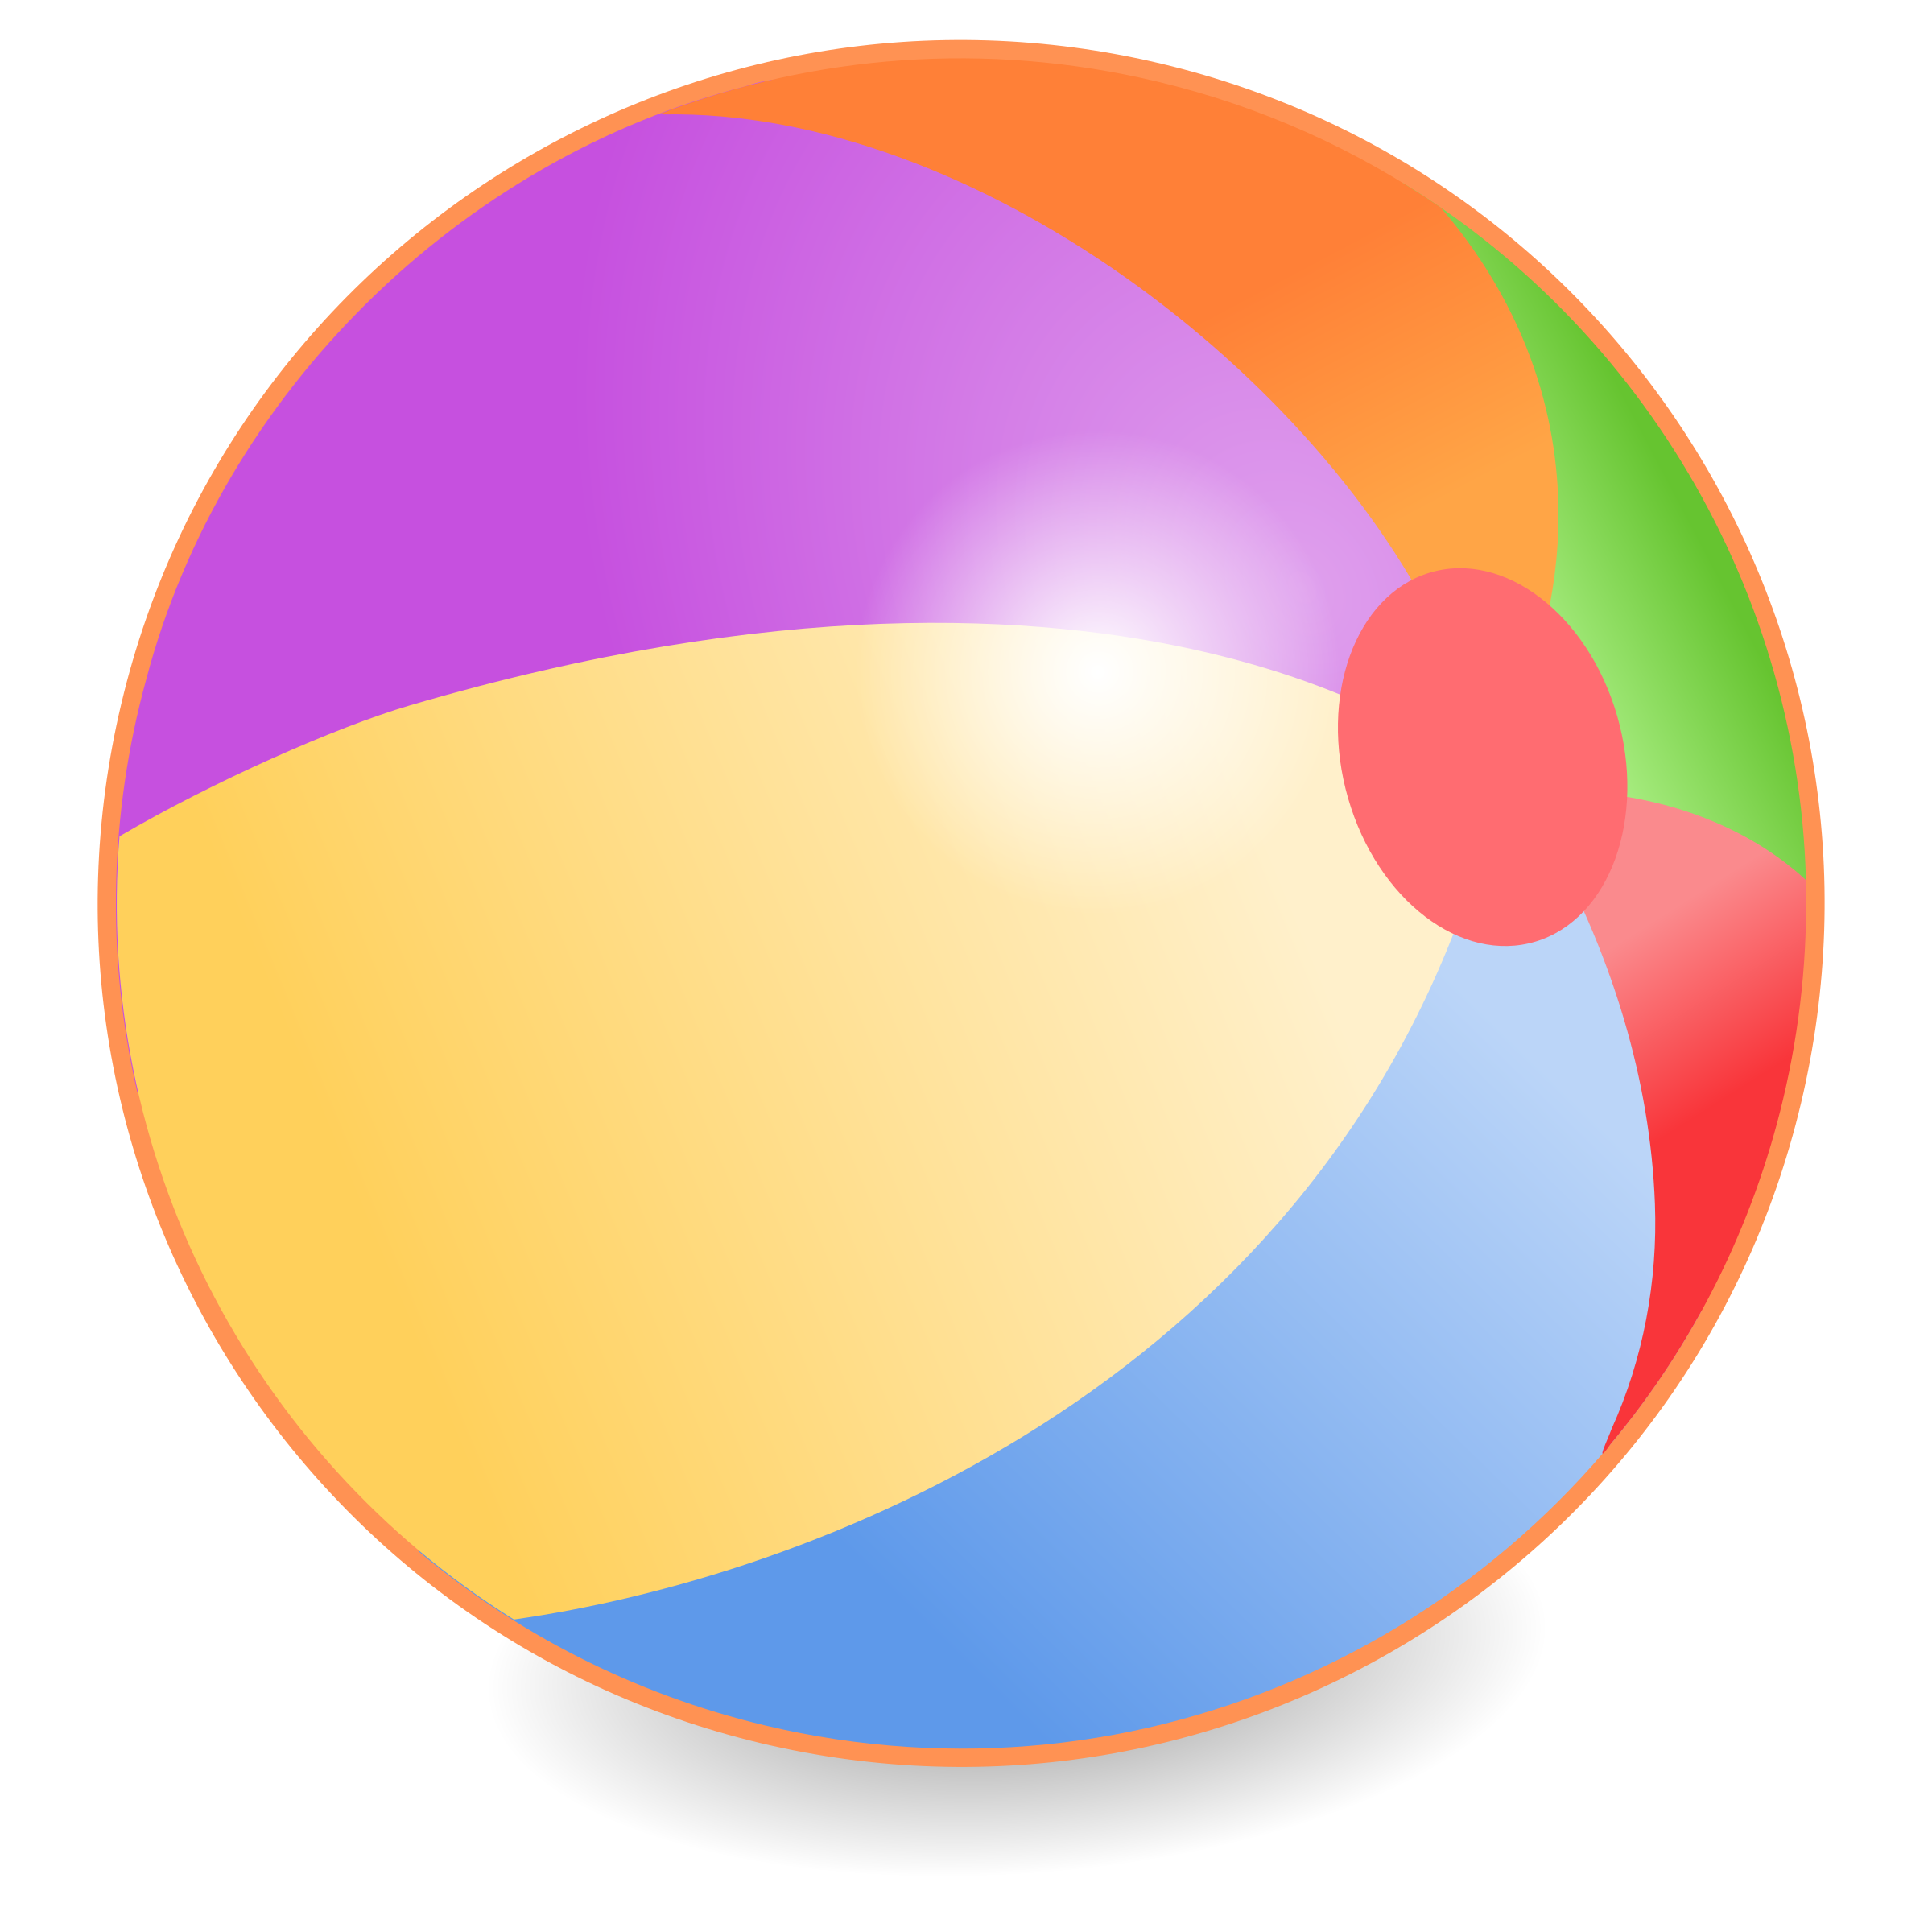 Beachball by Simanek